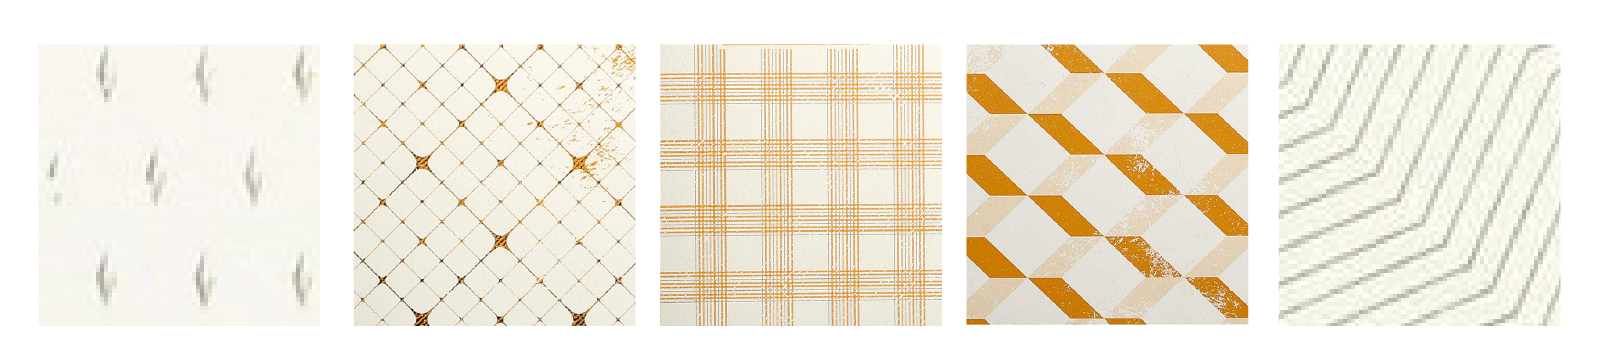 [Buy any 3 for $22.50] LR00038-47 Rhodia - Heritage Book Block Notebook / A5 Raw Binding Notebook / 80 ivory sheets / lined or grid ($15)  left to right // Moucheture, Quadrille, Tartan, Escher, Chevrons